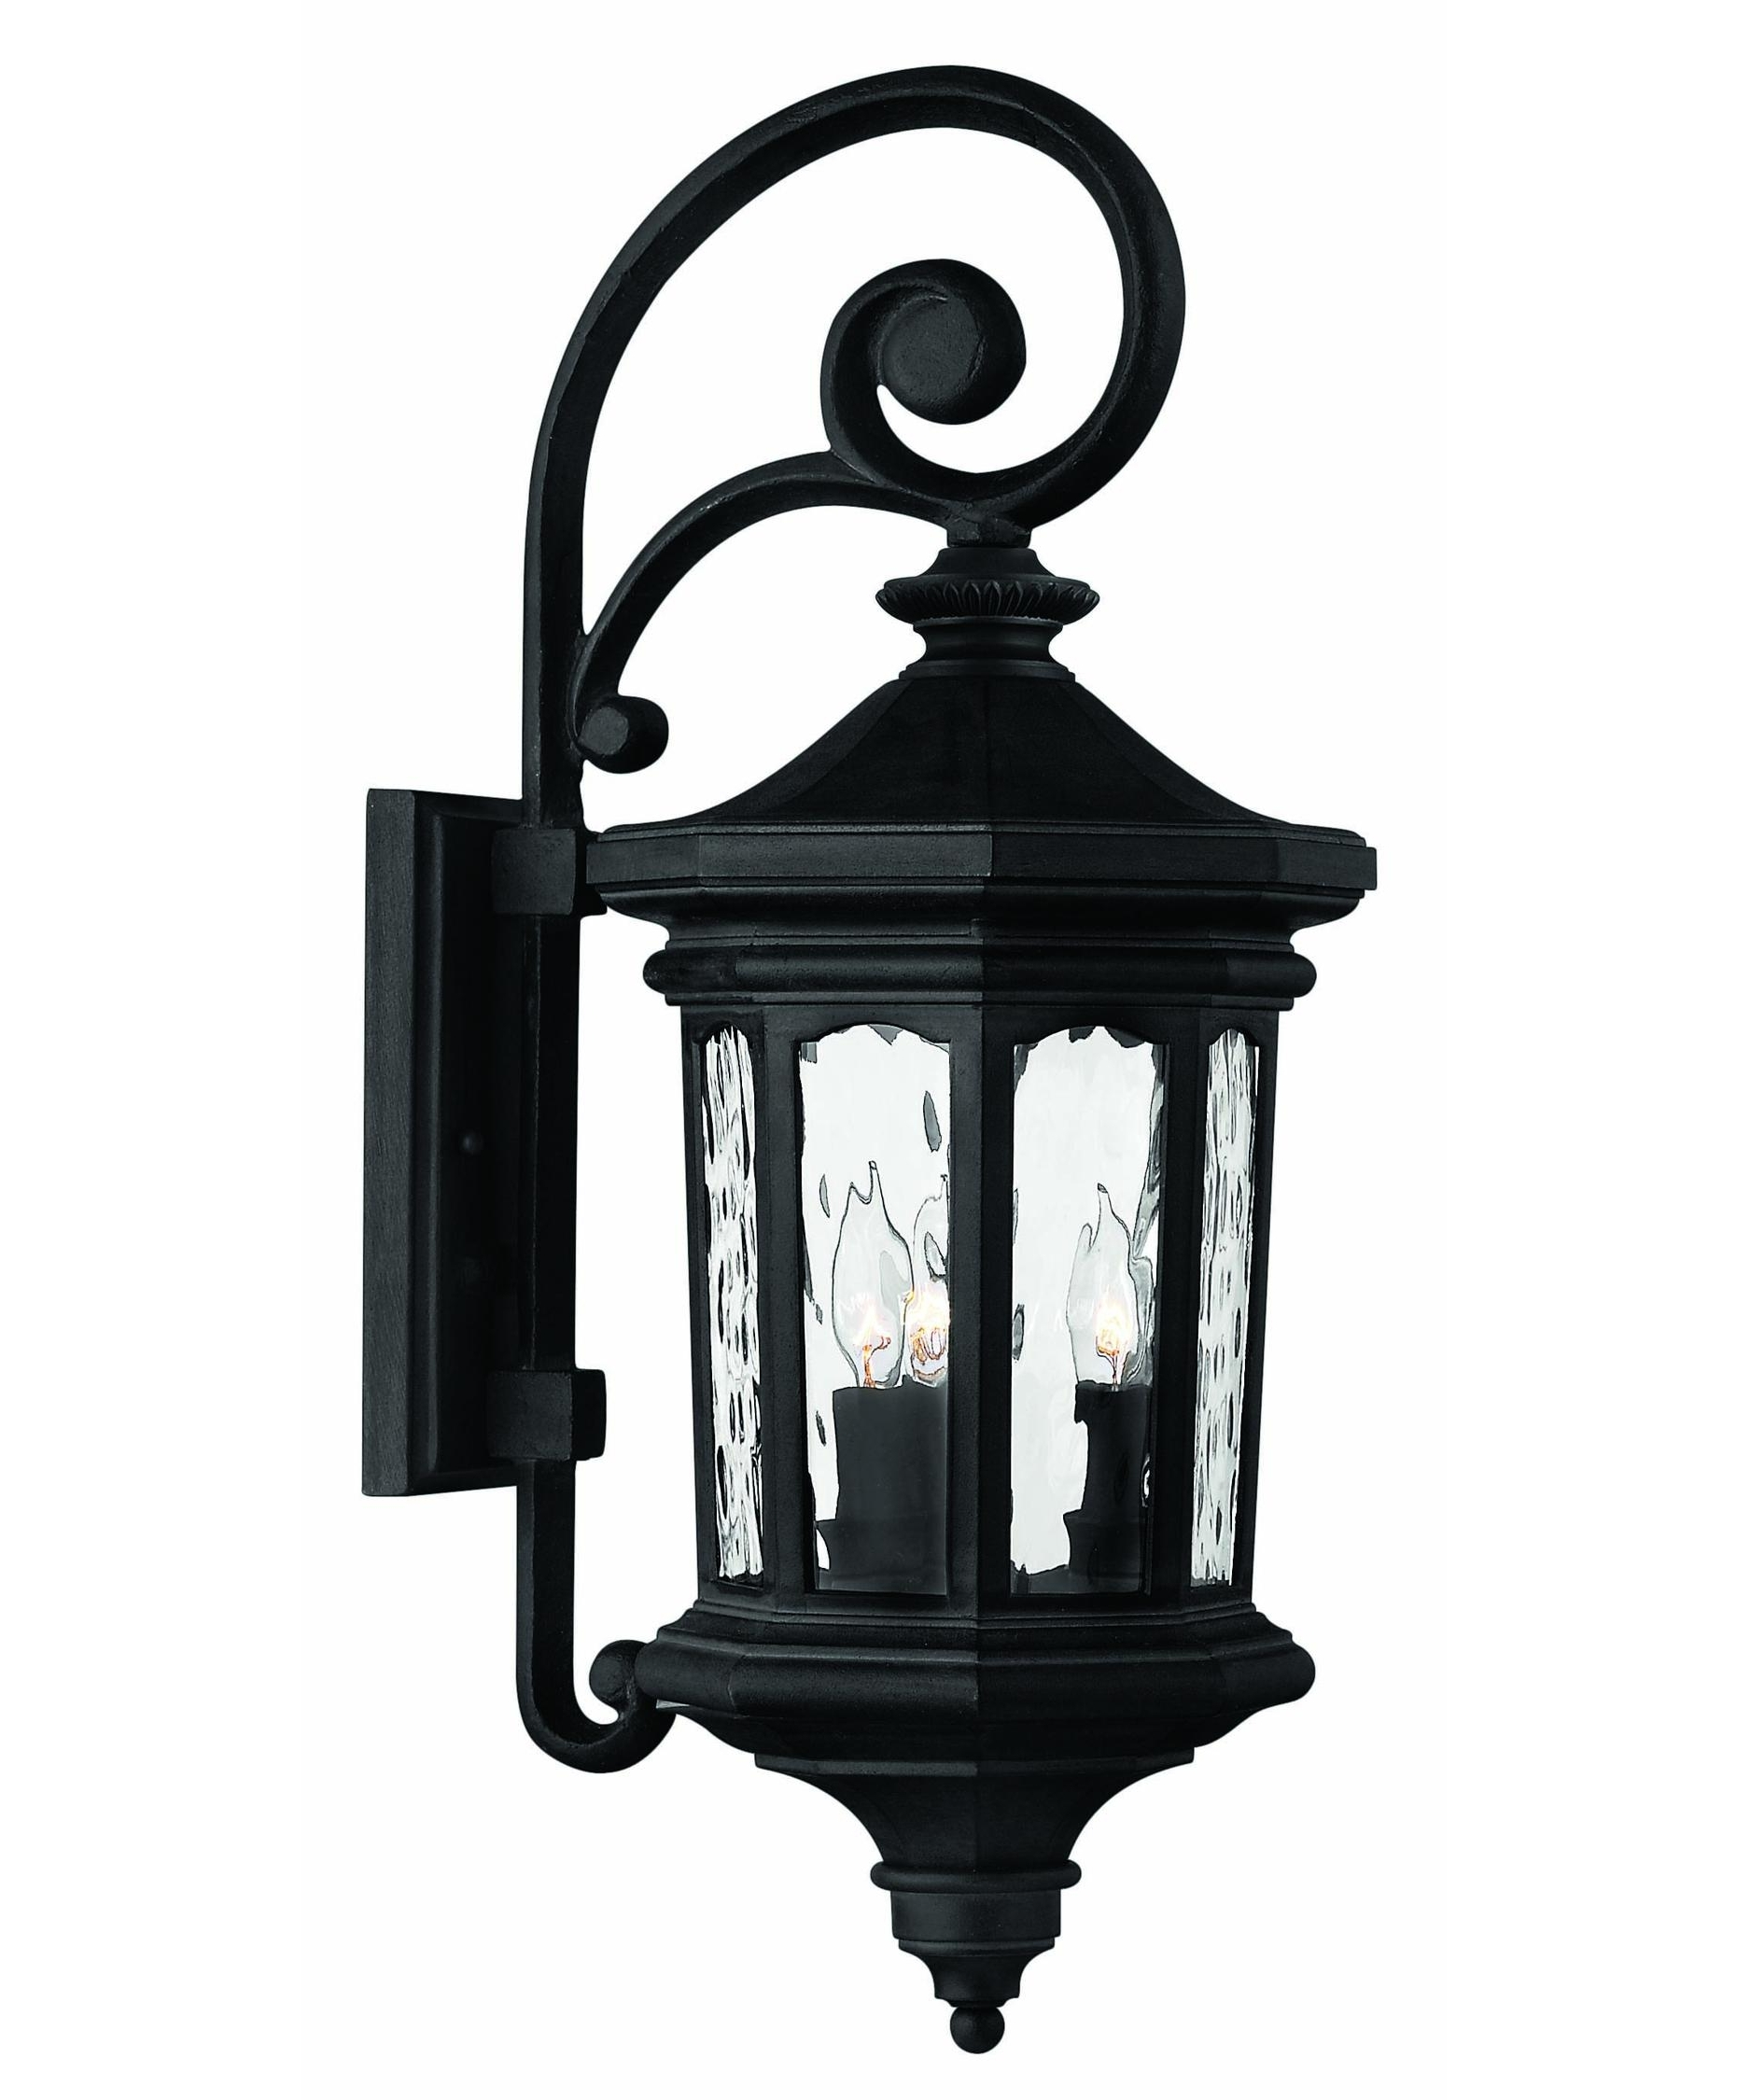 Widely Used Outdoor Lighting And Light Fixtures Intended For Outdoor Lighting (View 5 of 20)